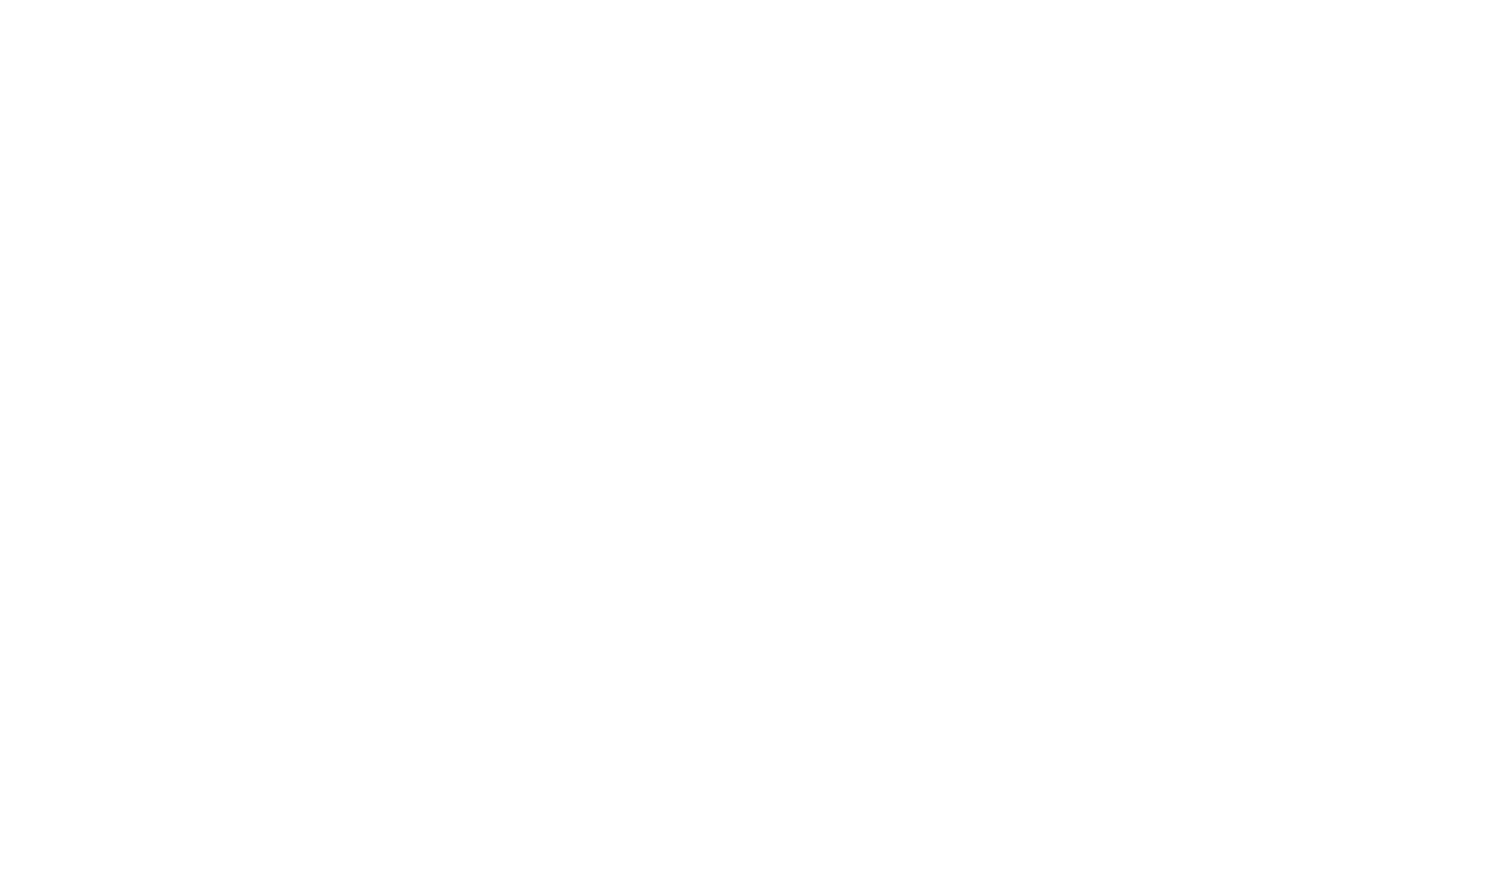 Voters of Arizona